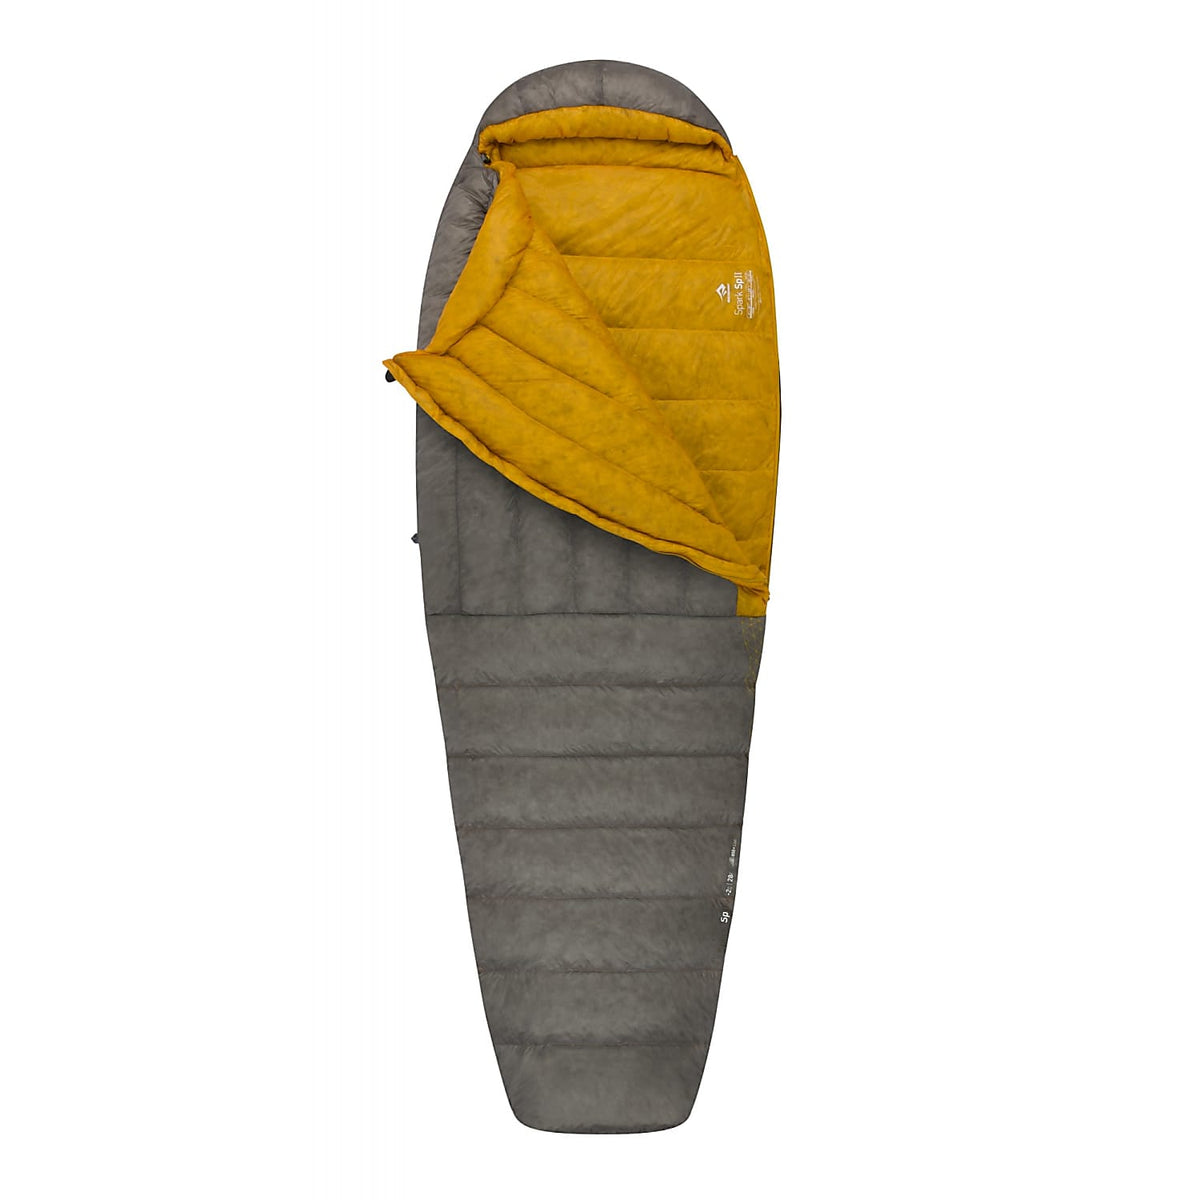 Sea to Summit Spark II sleeping bag shown partially open